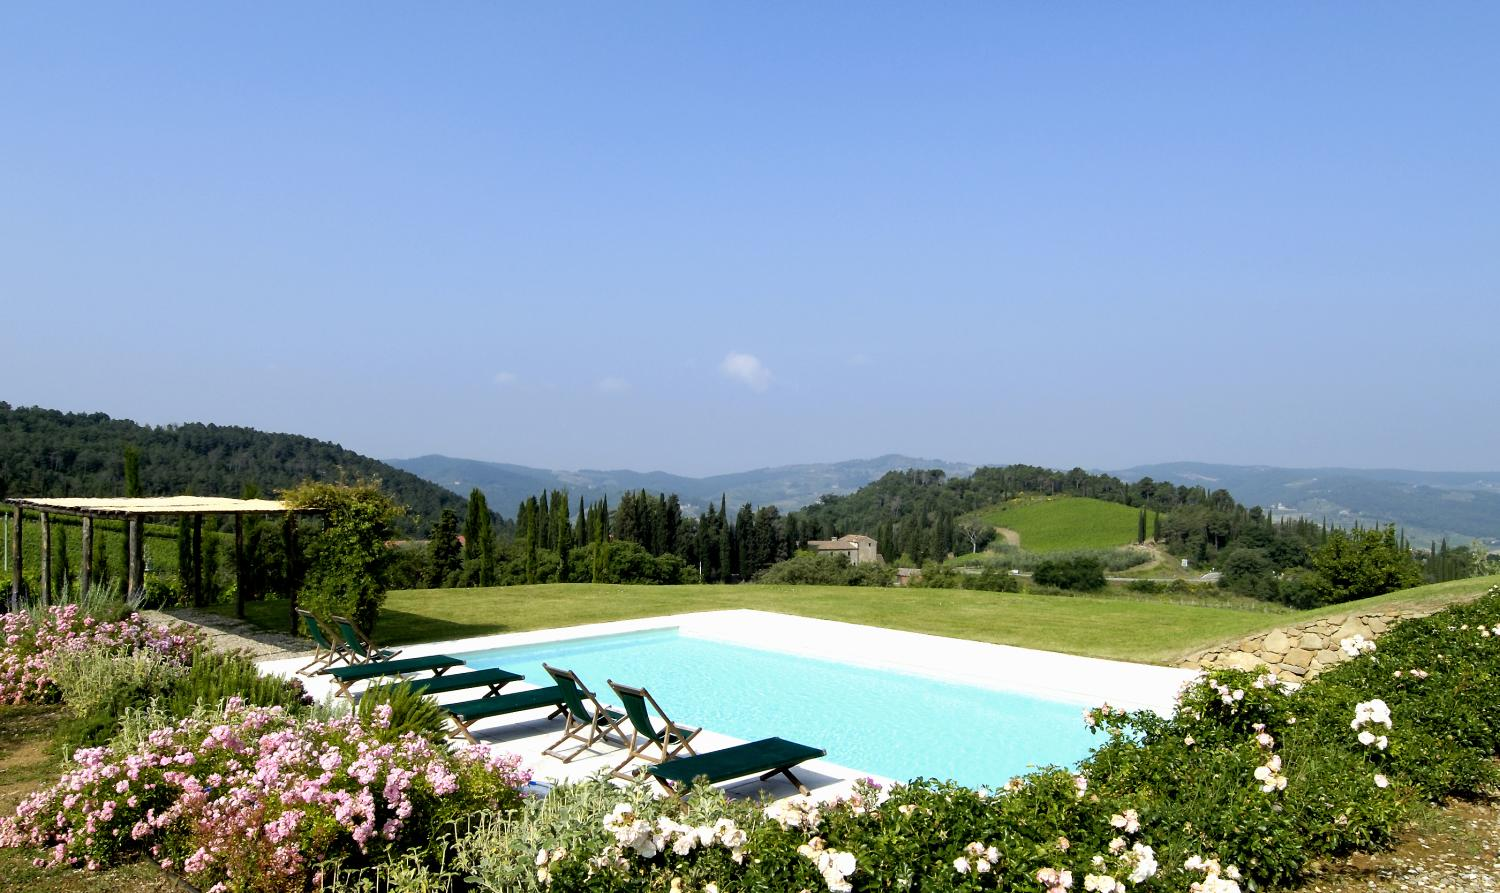 Pool and View , La Riserva, Greve in Chianti, Tuscany.